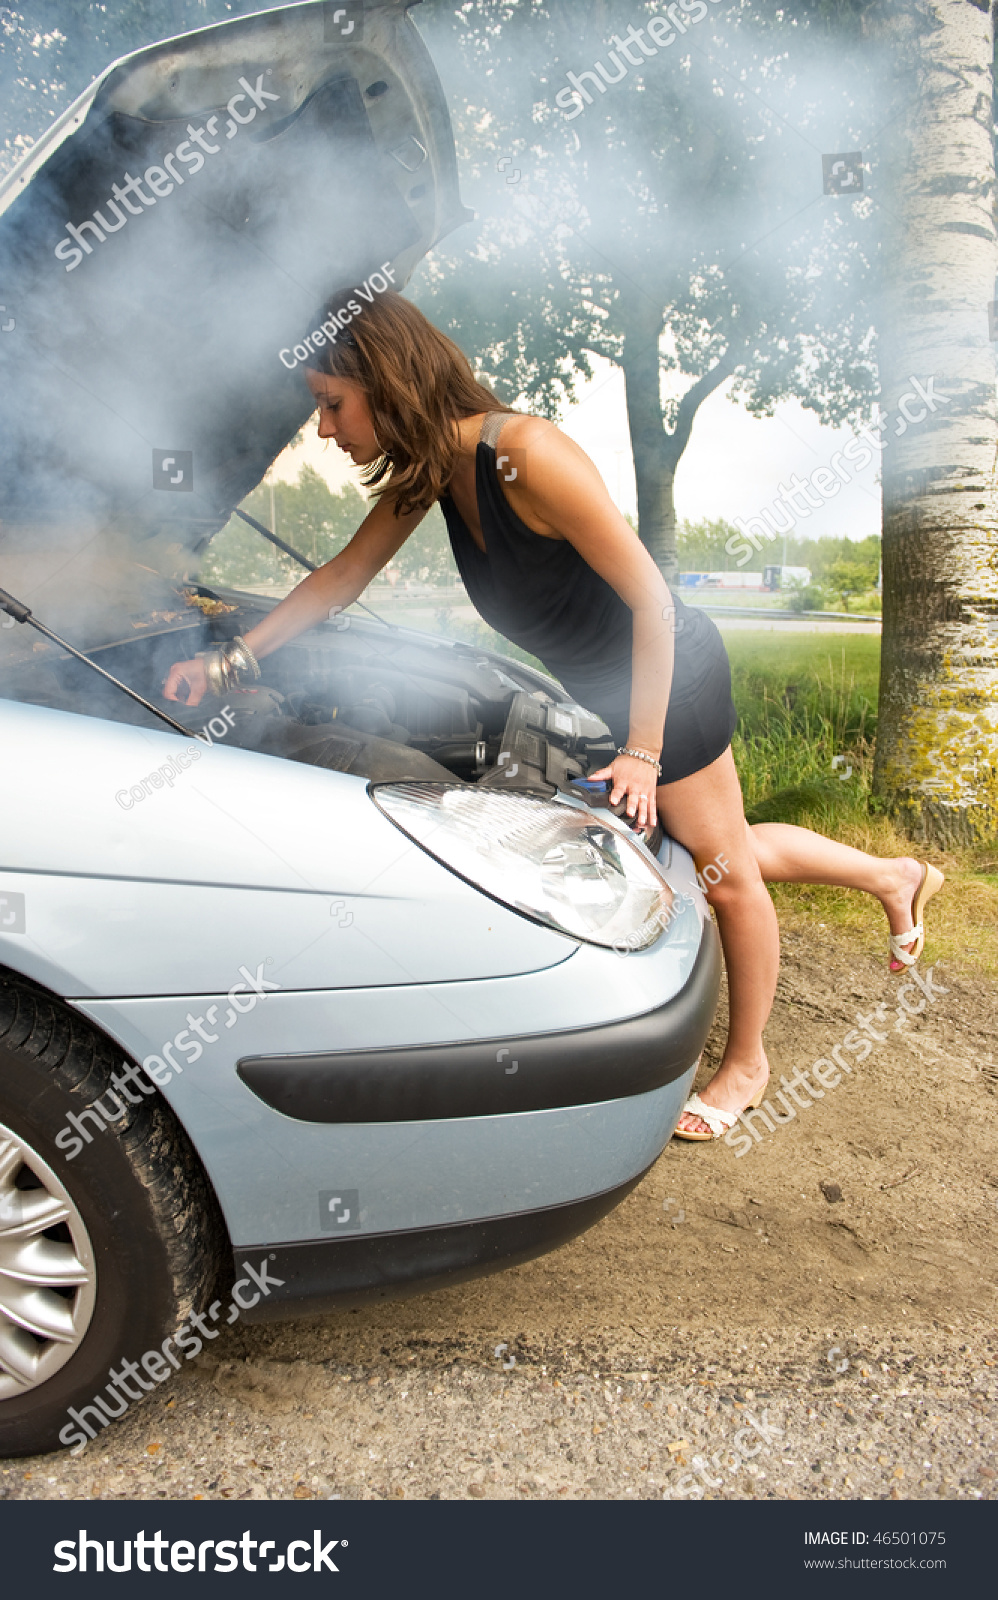 Young Woman Bending Over Blown Engine Stock Photo 46501075 -7489